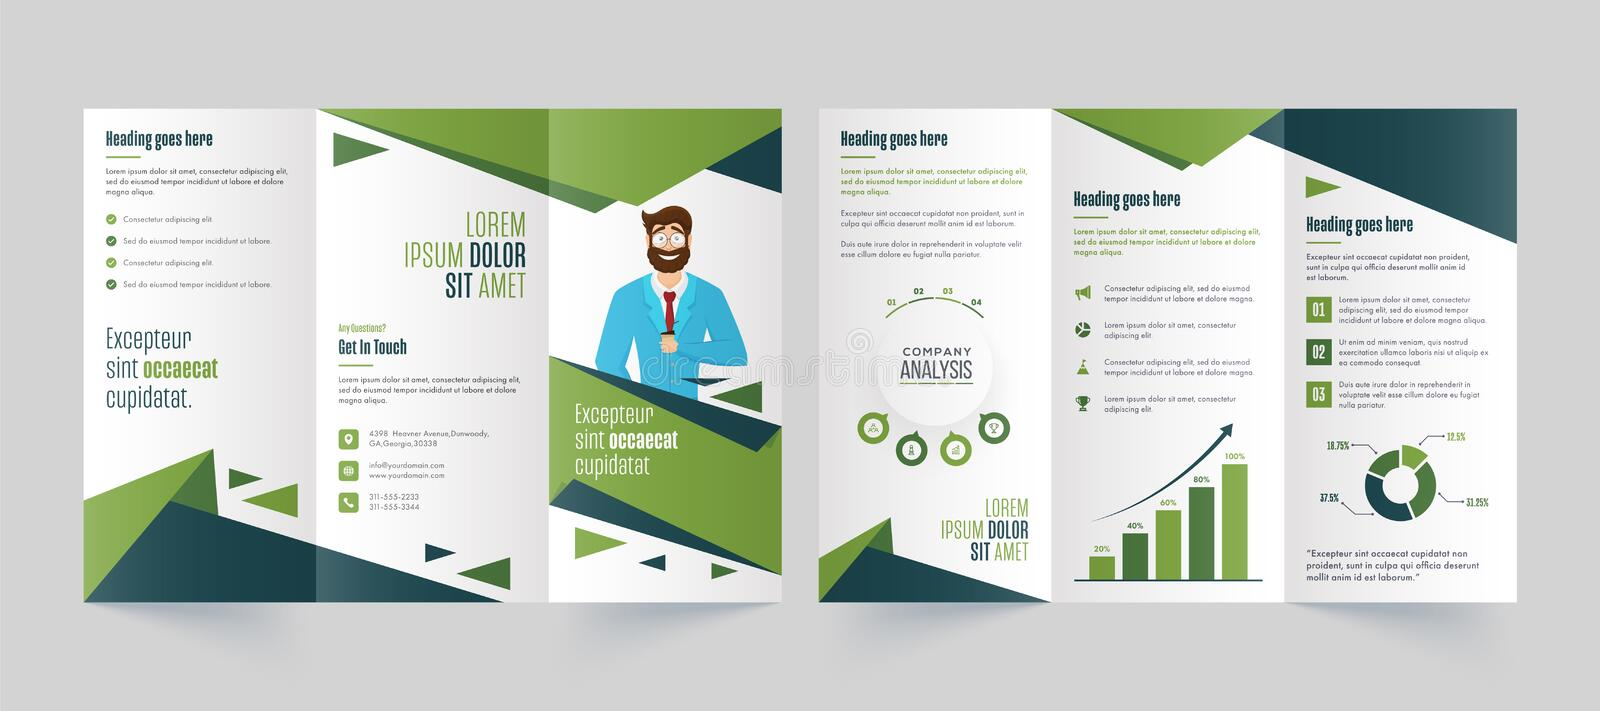 Green and White Tri-Fold Brochure, Leaflet, Template Design for Business 向量例证